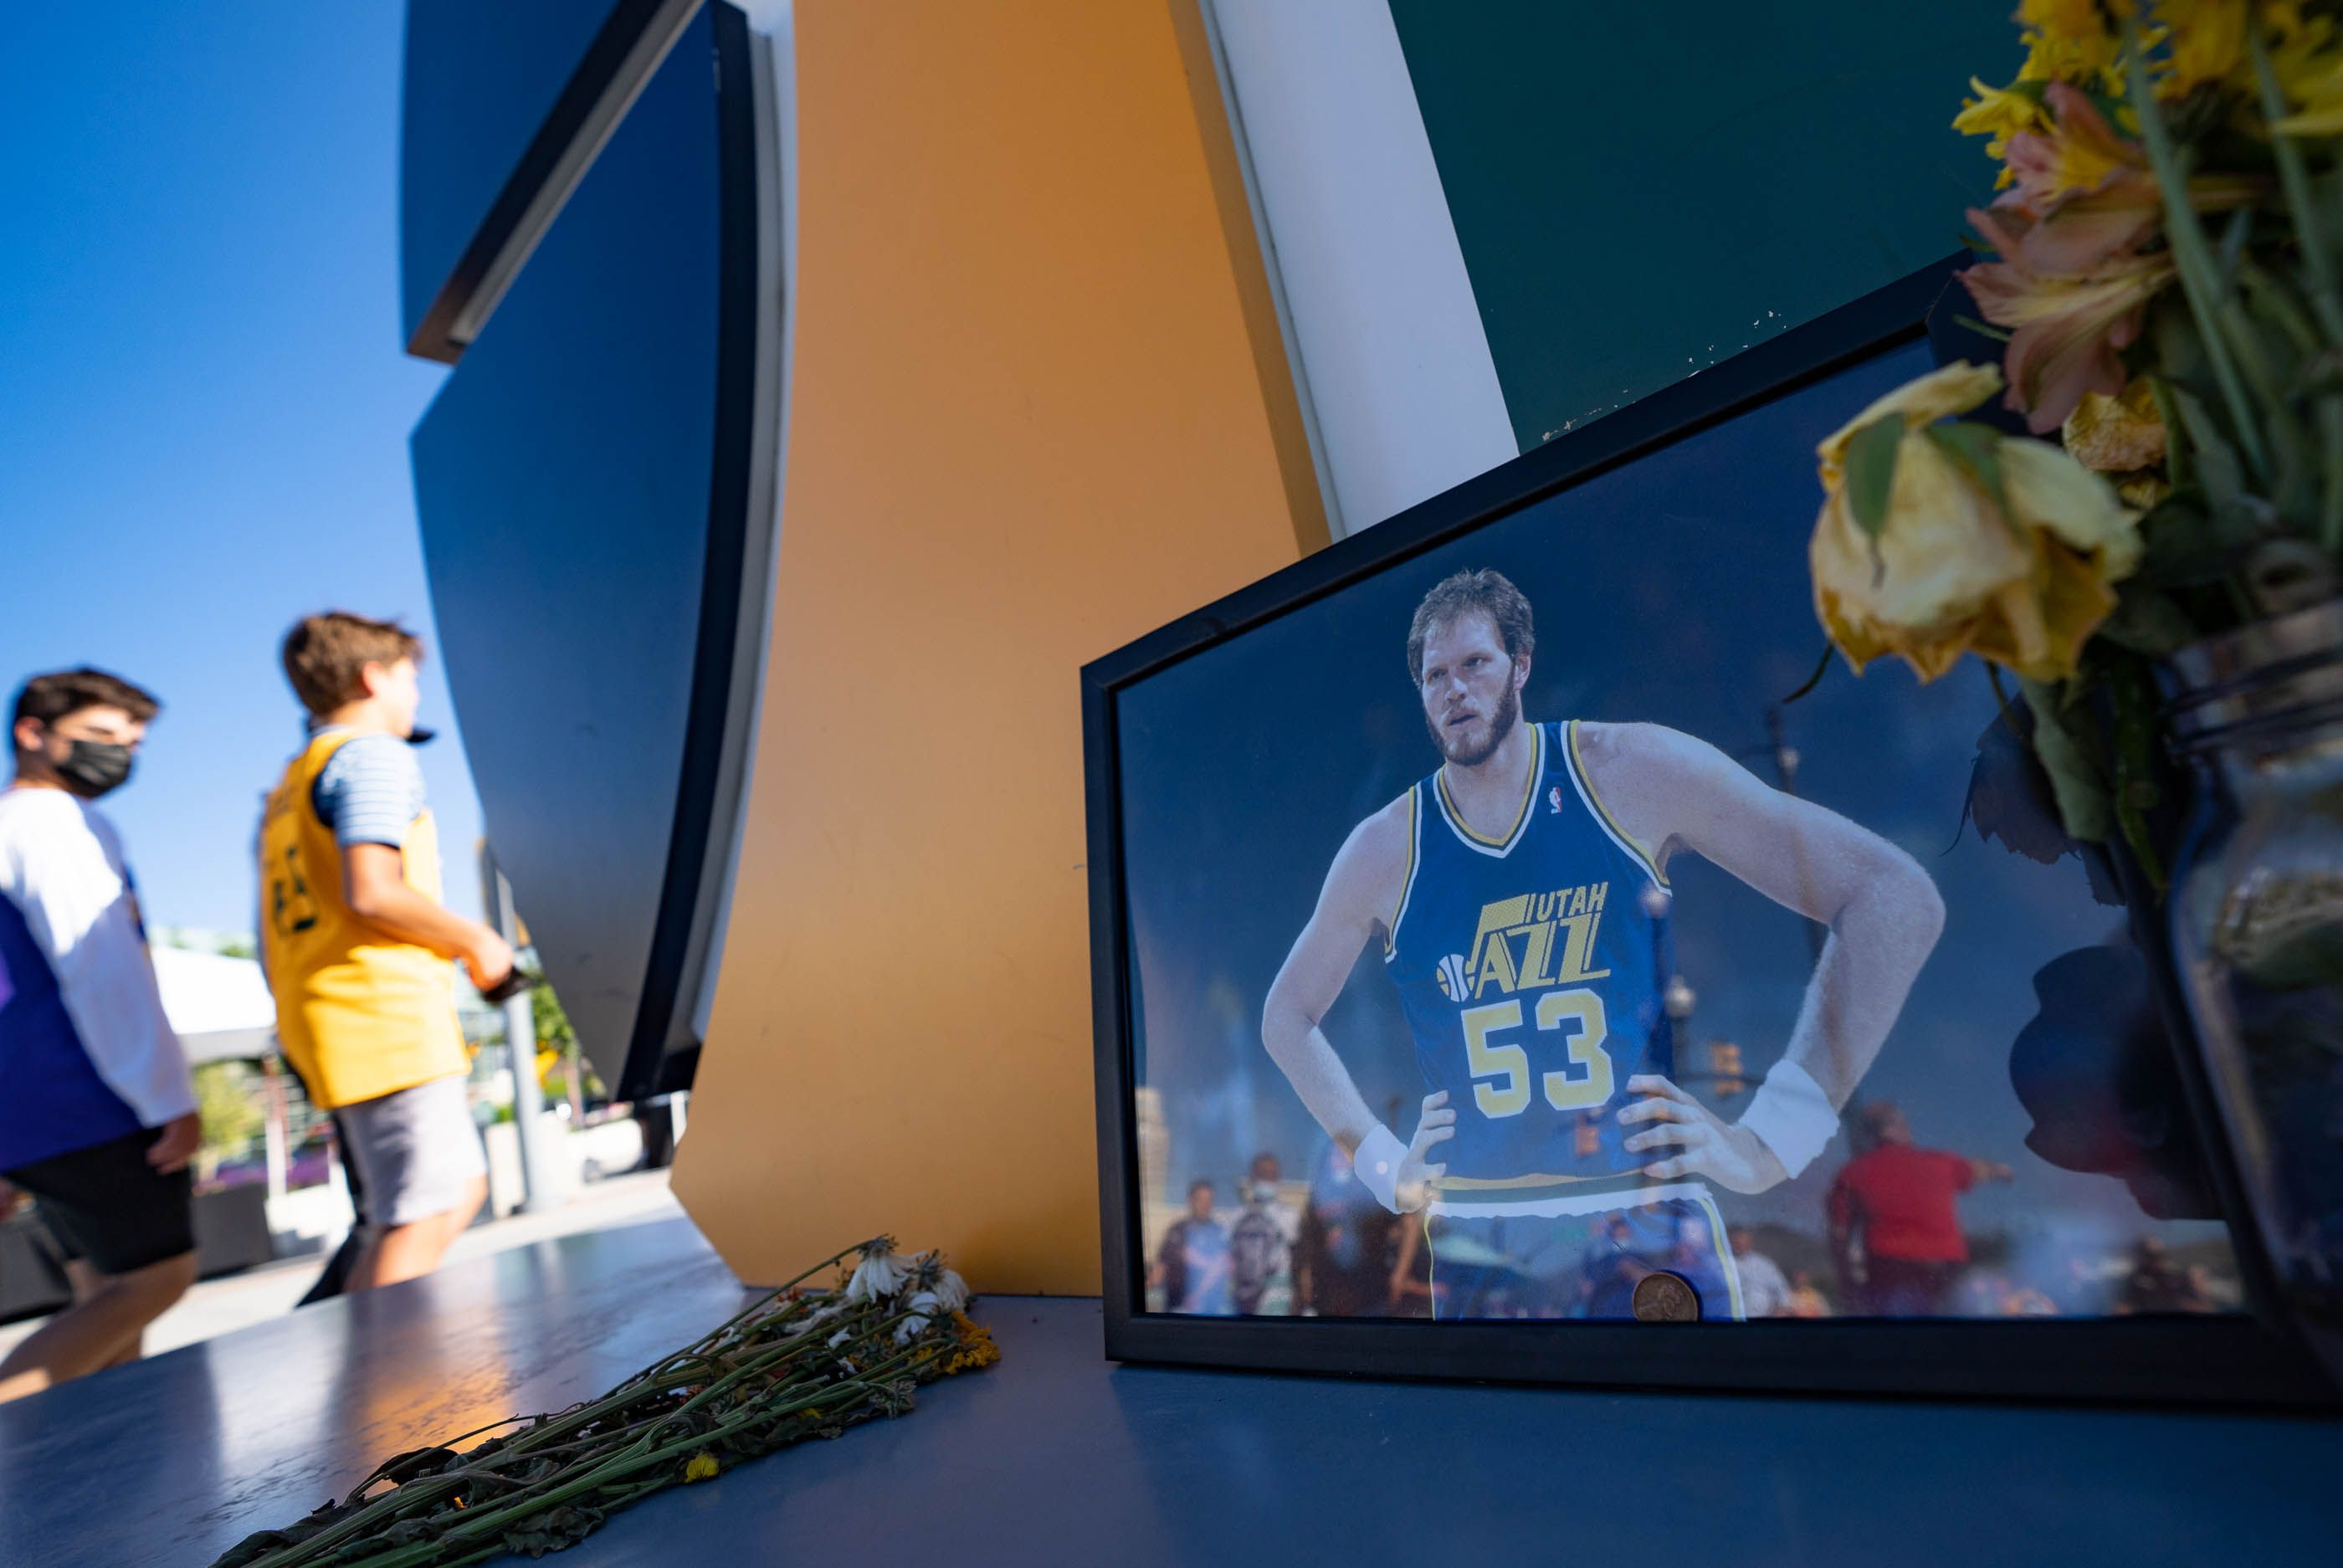 (Francisco Kjolseth | The Salt Lake Tribune) A small memorial for former Jazz player Mark Eaton is erected on the Jazz note in front of Vivint Smart Home Arena on Wednesday, June 2, 2021, before the start of Game 5 of an NBA basketball first-round playoff series against the Memphis Grizzlies in Salt Lake City, UT.